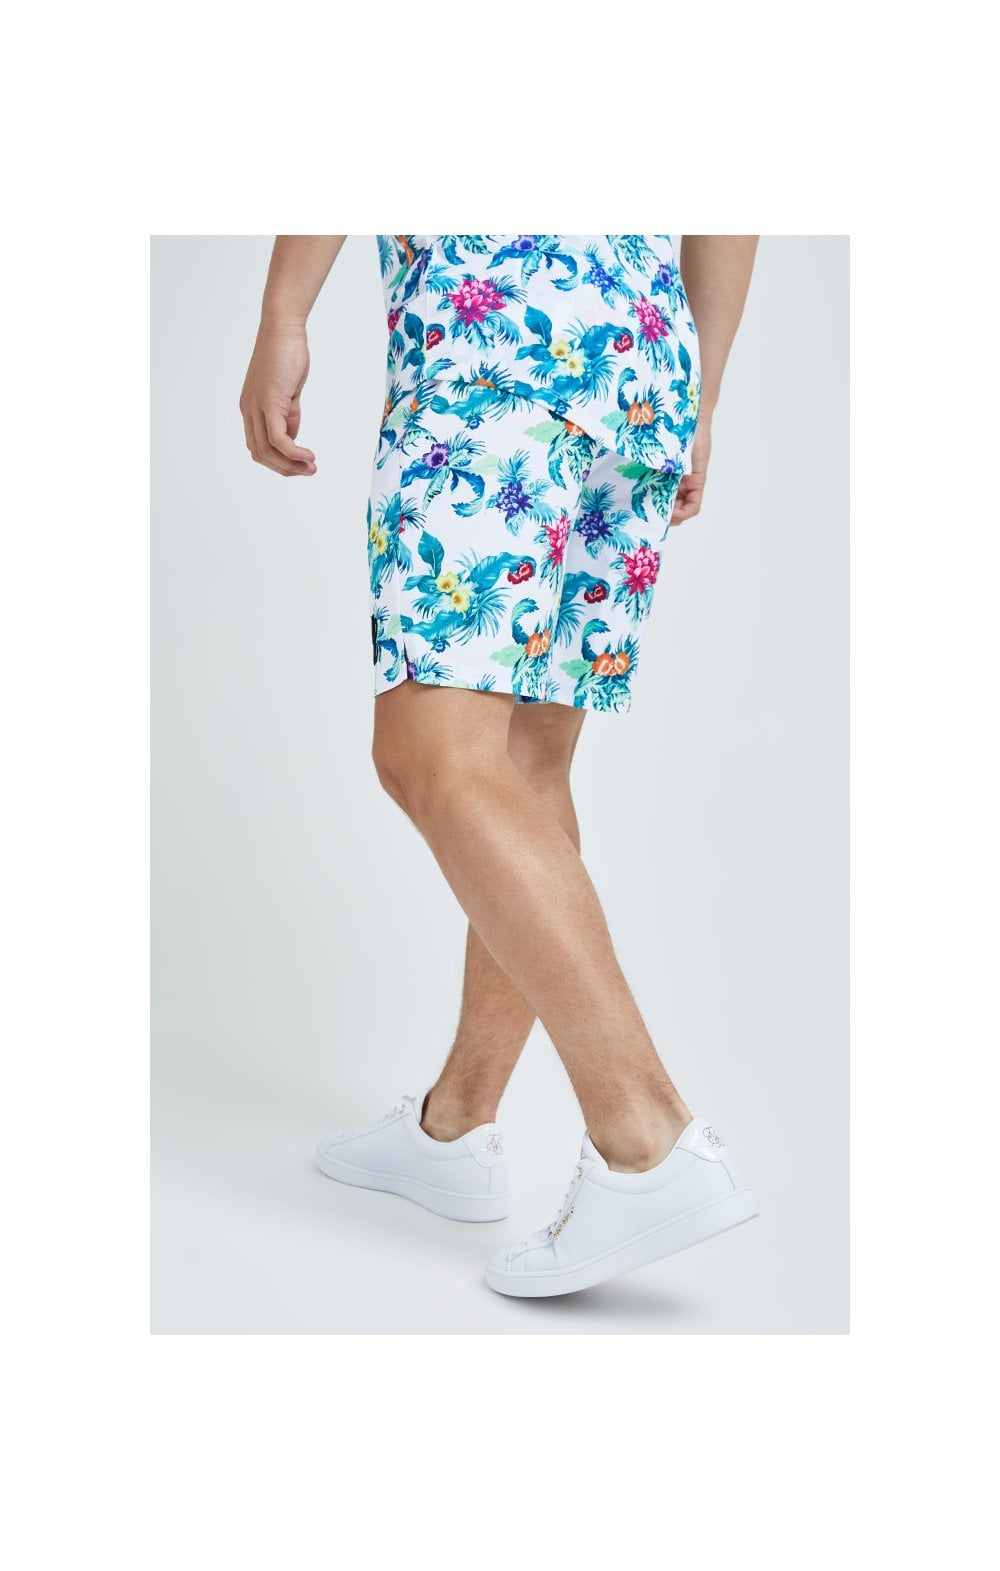 Illusive London Swim Shorts - White & Floral (4)